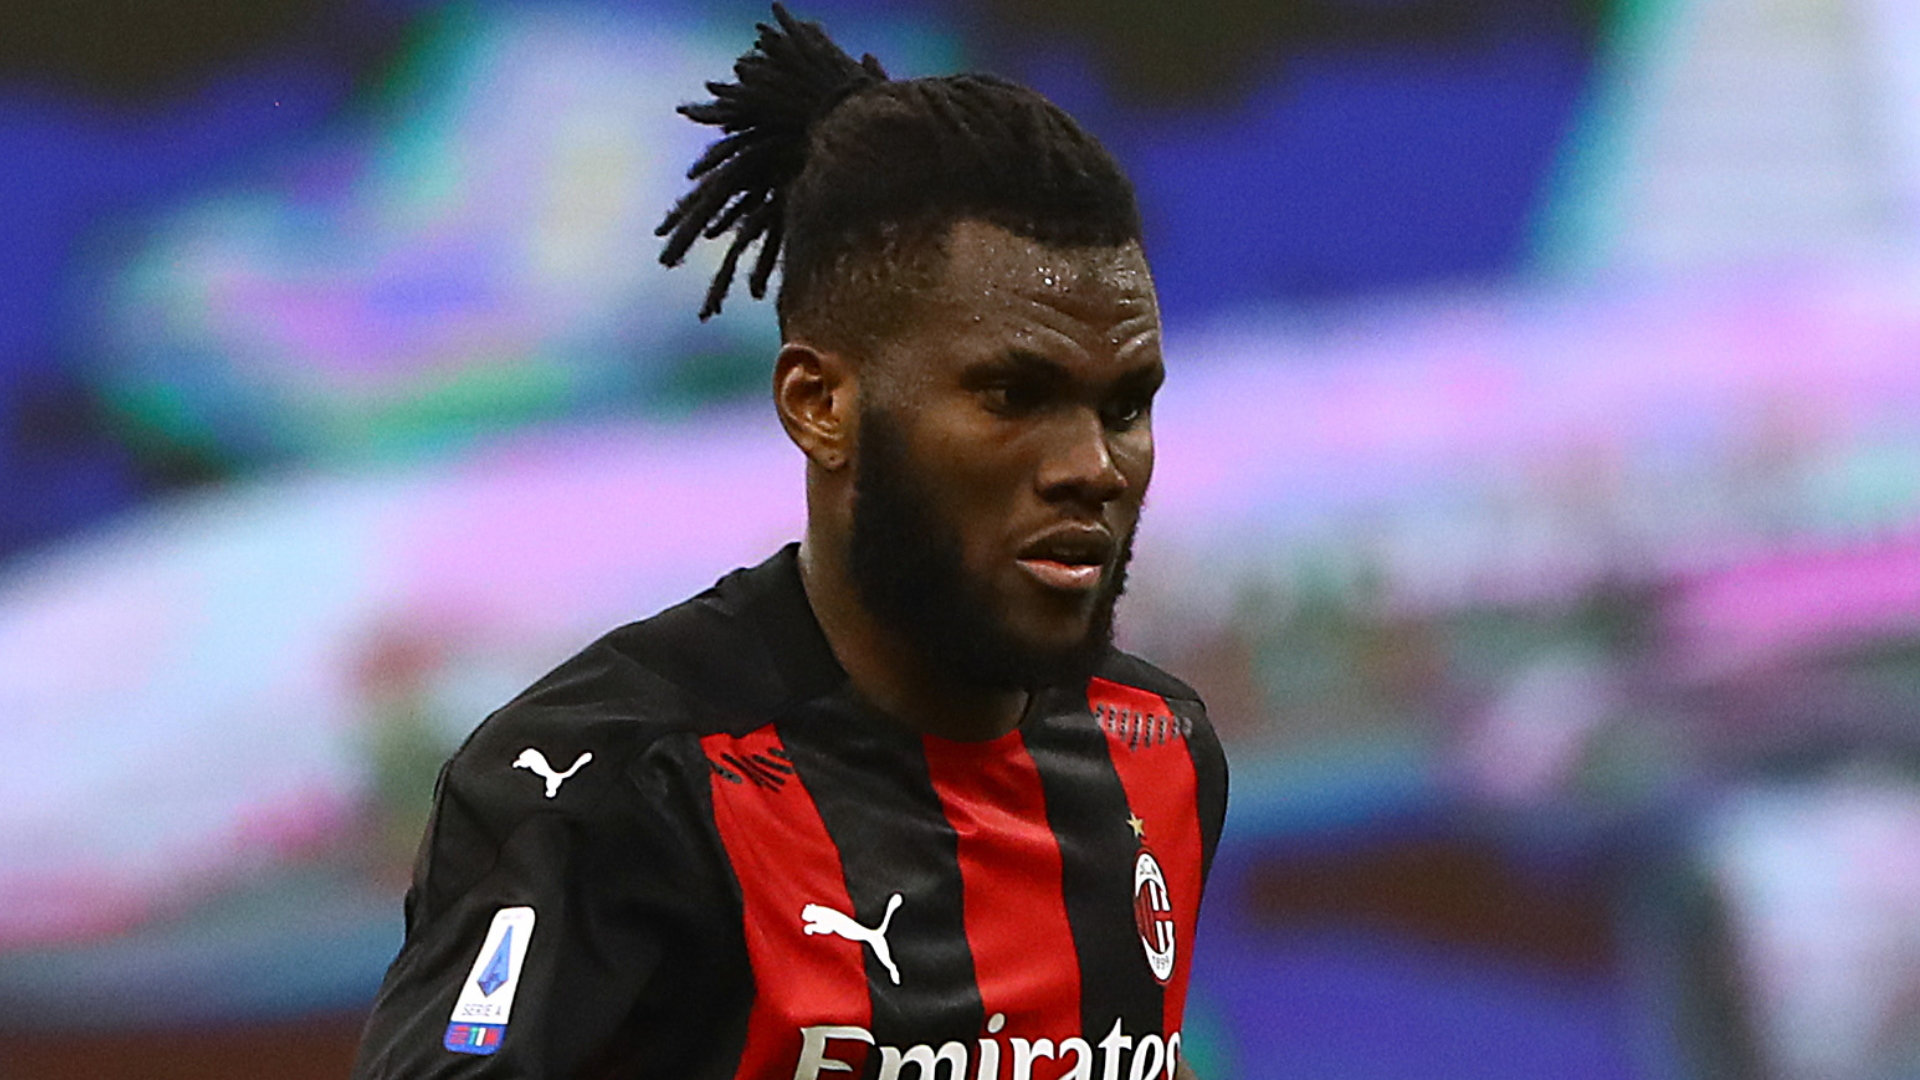 'I want to stay in Milan forever,' says Kessi in wake of Liverpool and Spurs rumours